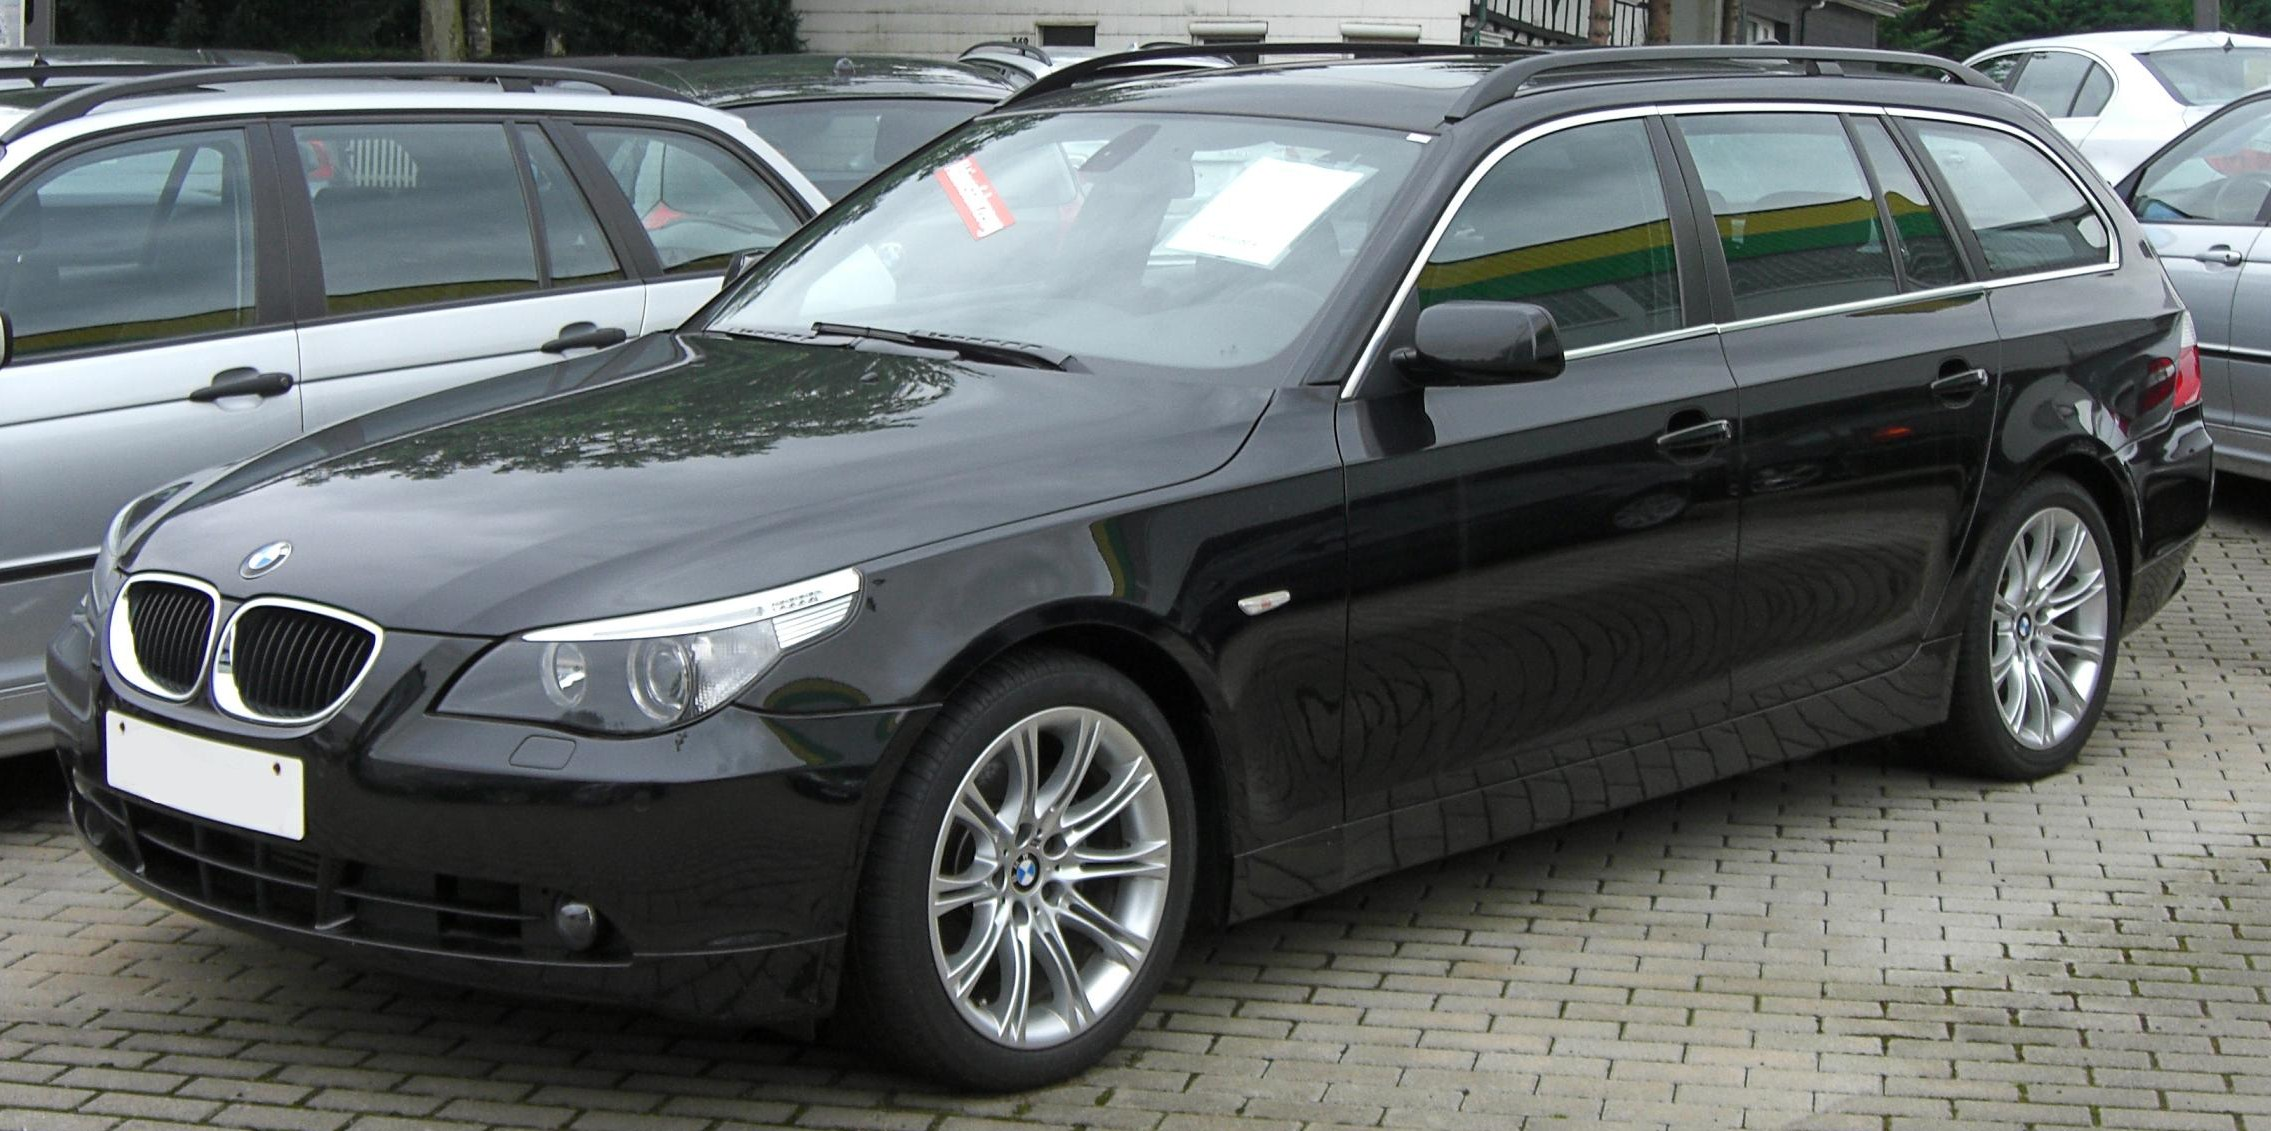 file bmw 5er touring e61 front jpg wikimedia commons. Black Bedroom Furniture Sets. Home Design Ideas